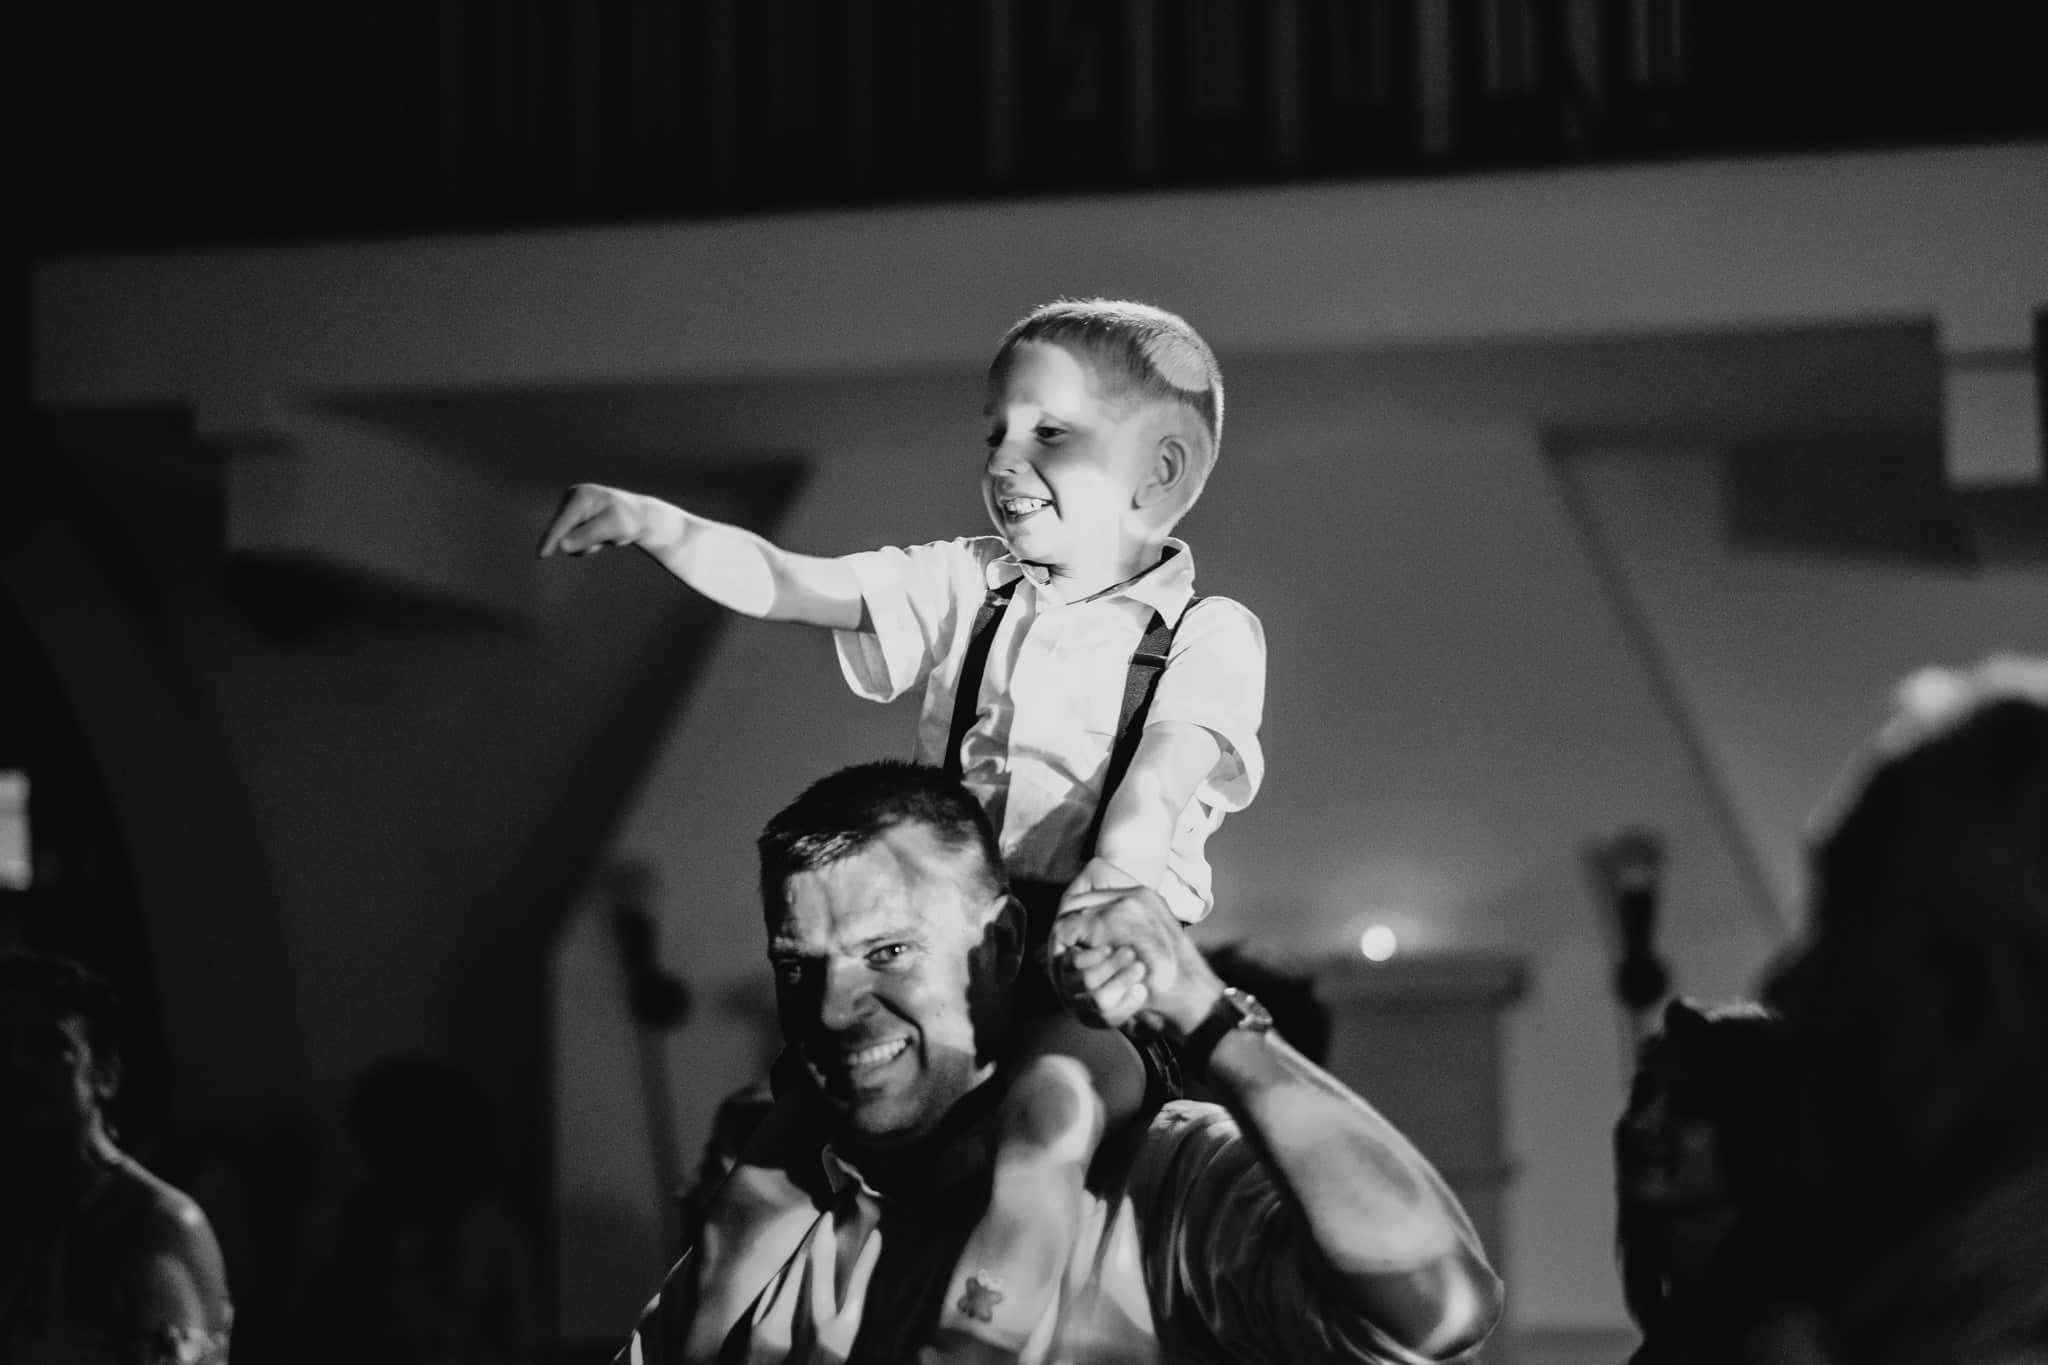 father and child dancing